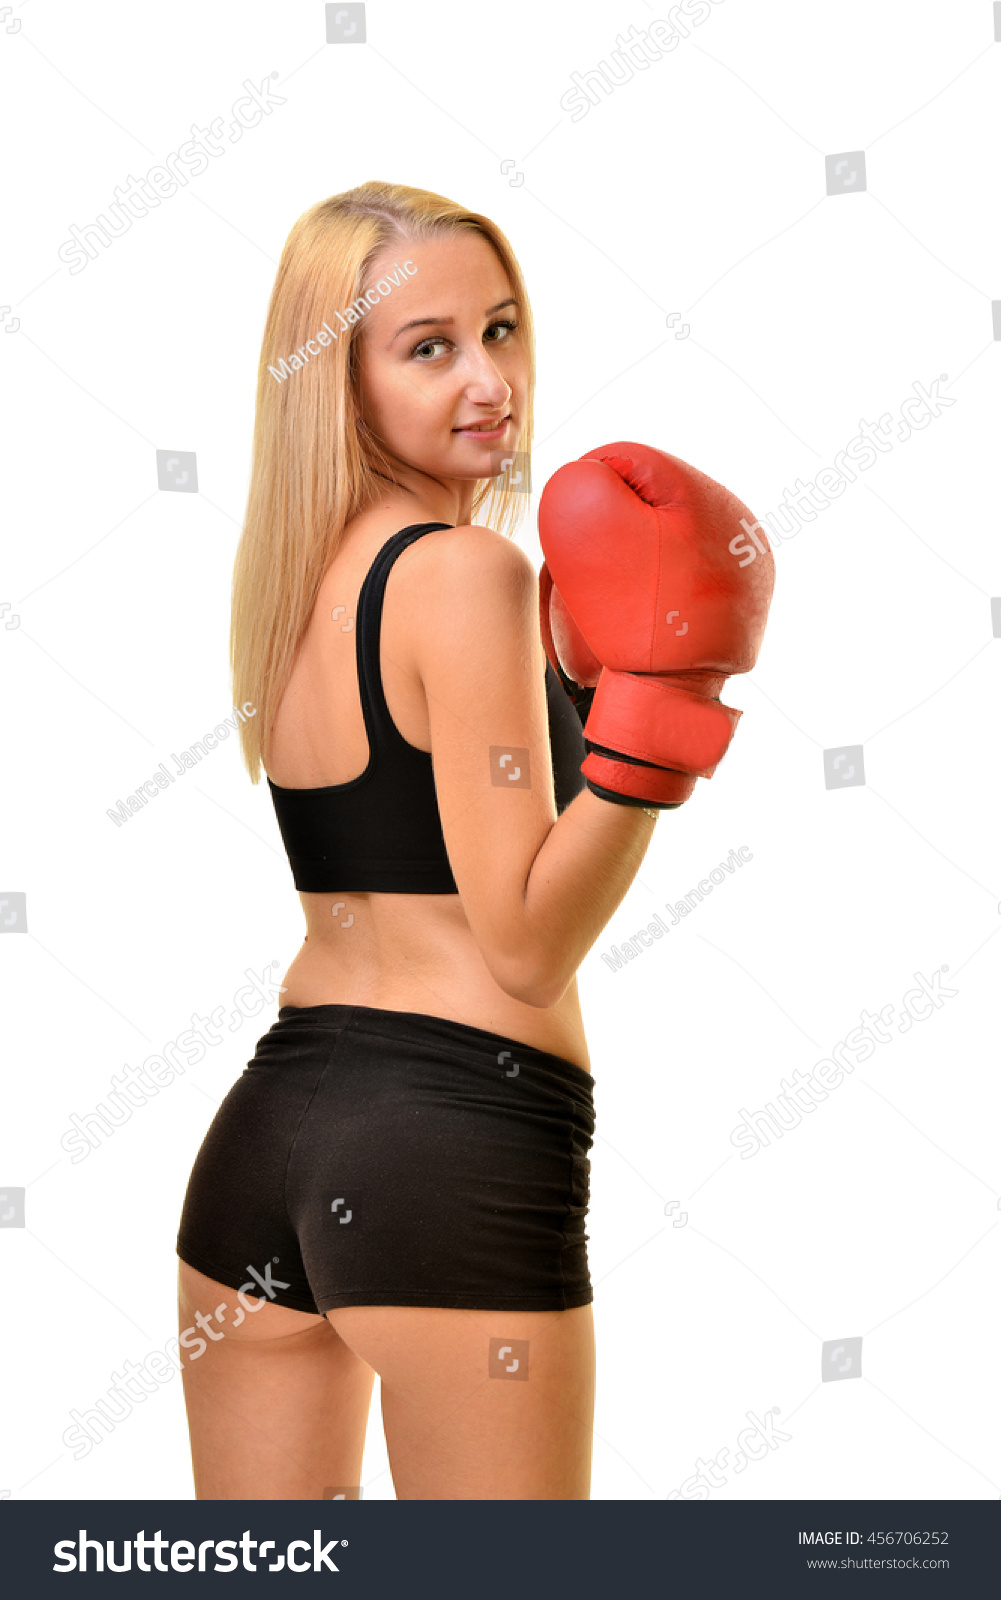 Sexy ladies boxing